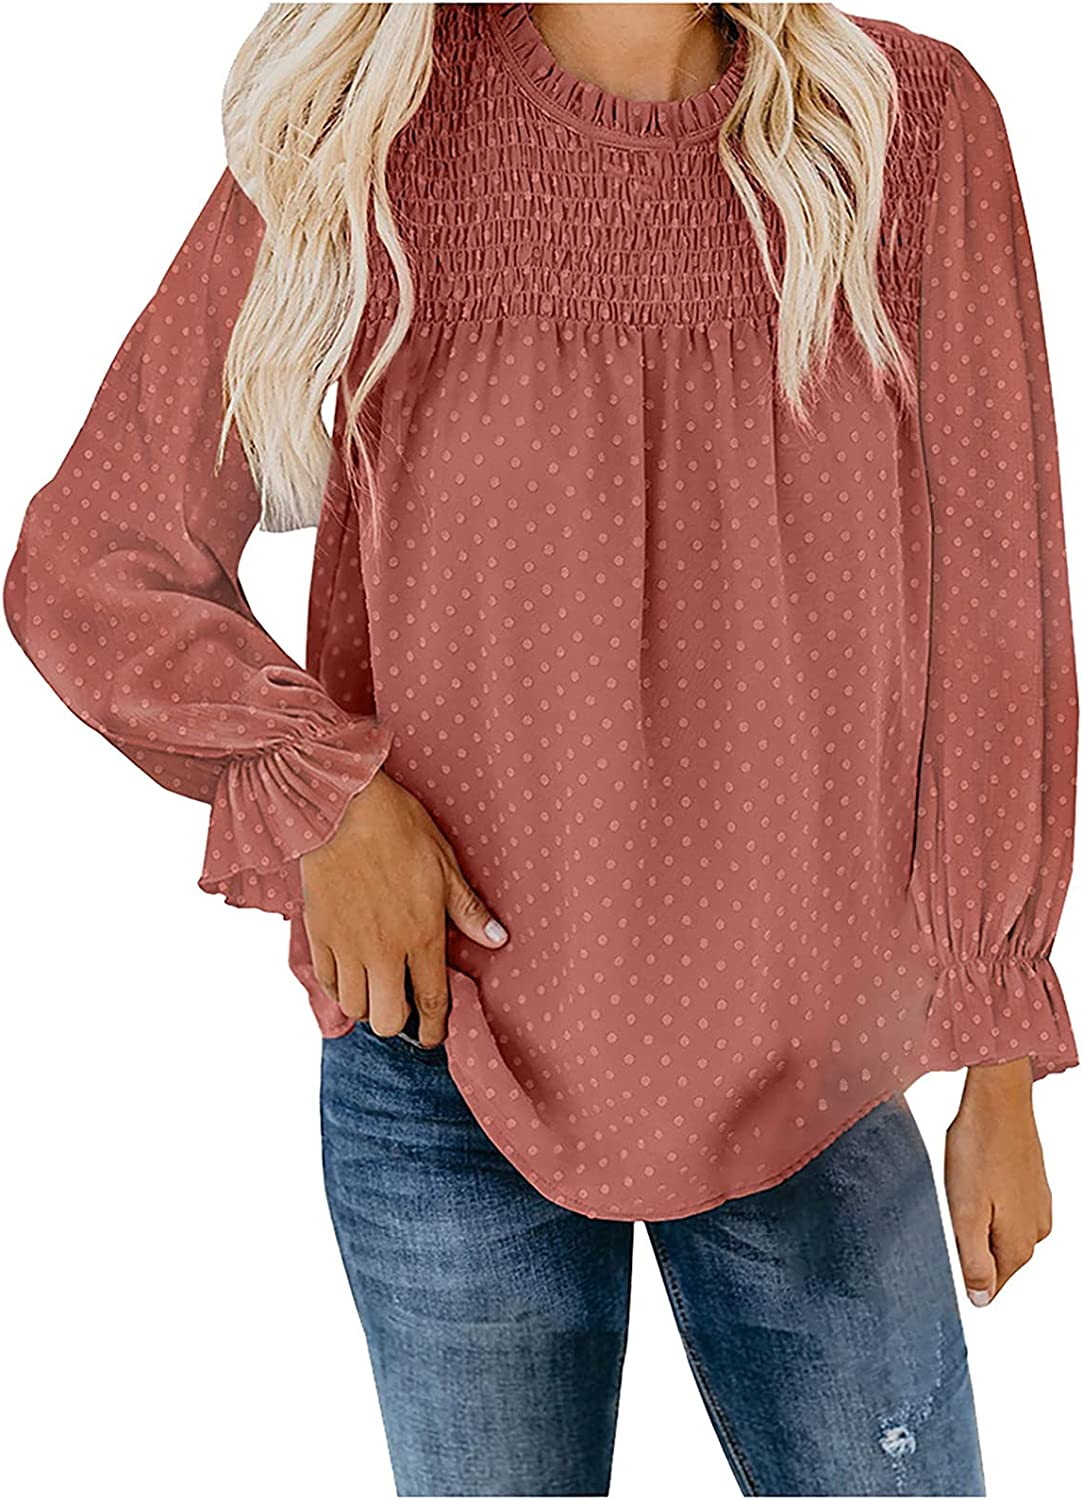 Women's Chiffon Casual Max 54% OFF Blouse Crew Sleeve A surprise price is realized Lantern Shir Neck Long